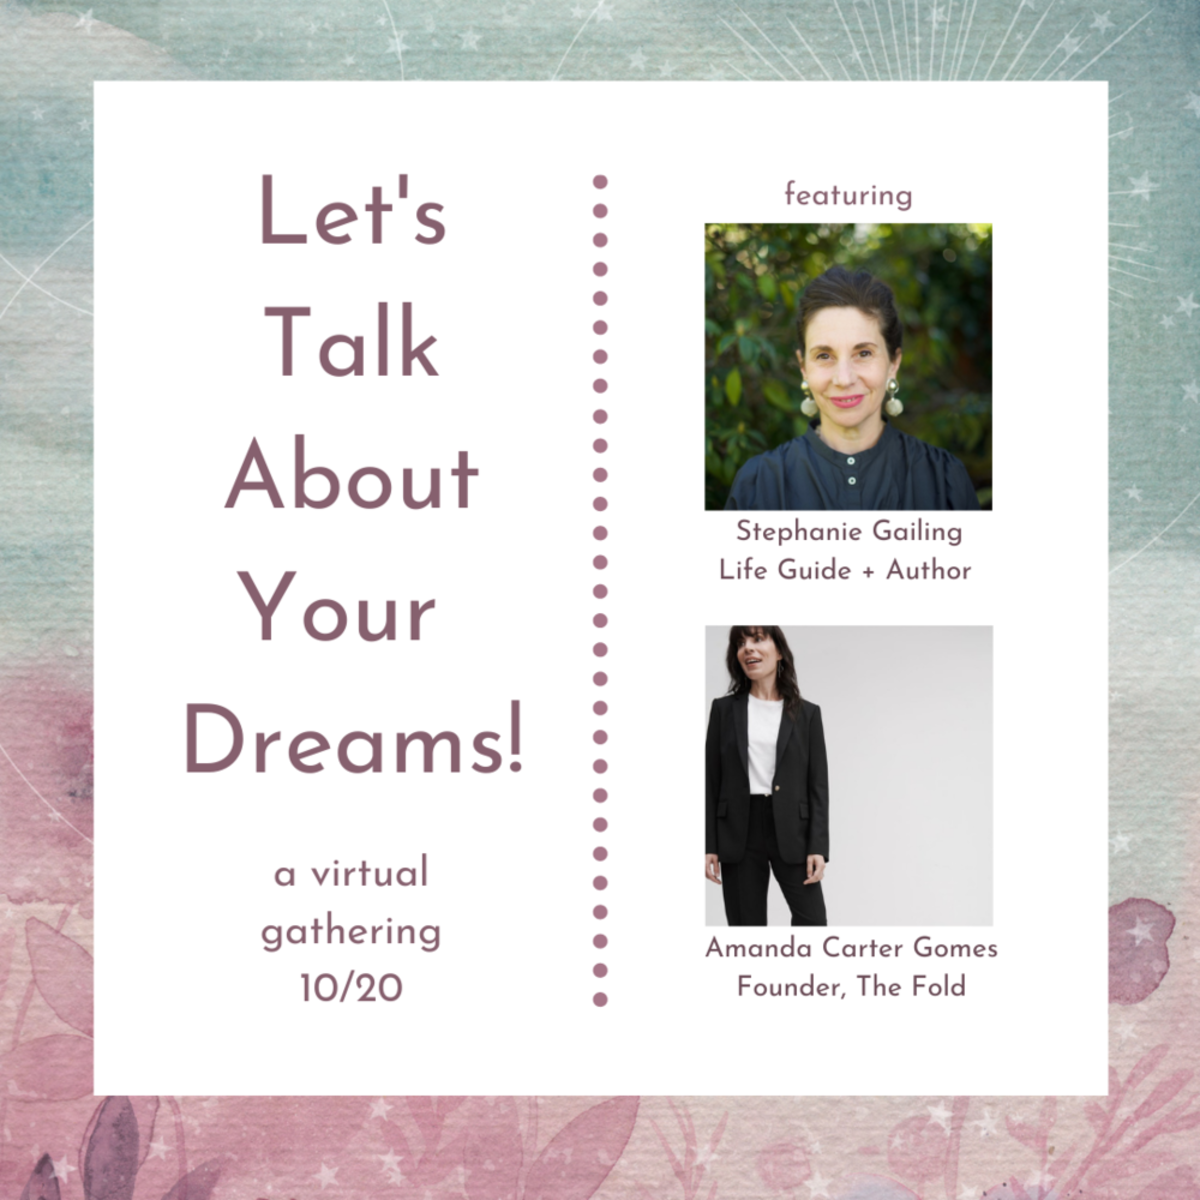 DreamSeattleCloudRoomStephanieGailing